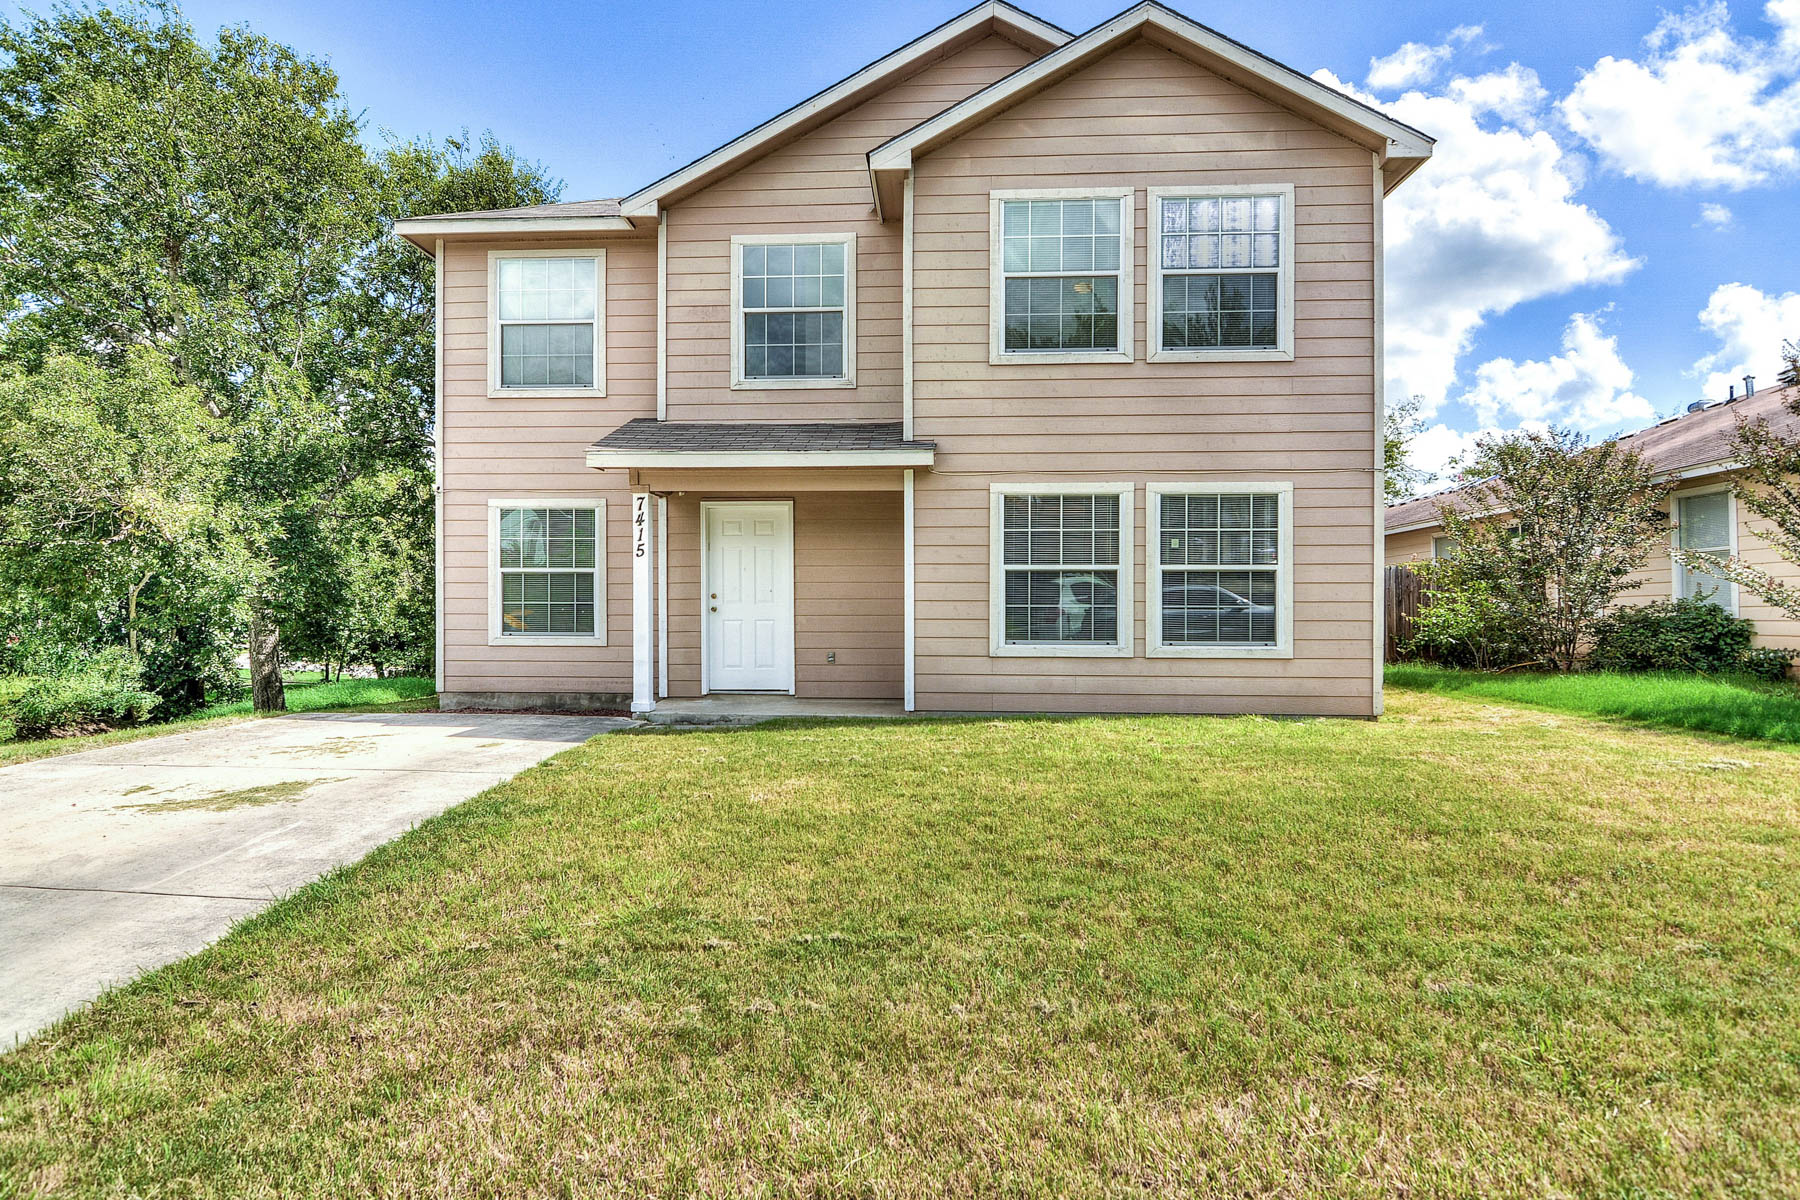 Single Family Home for Sale at Wonderful Family Home in Converse 7415 Coers Blvd Converse, Texas 78109 United States